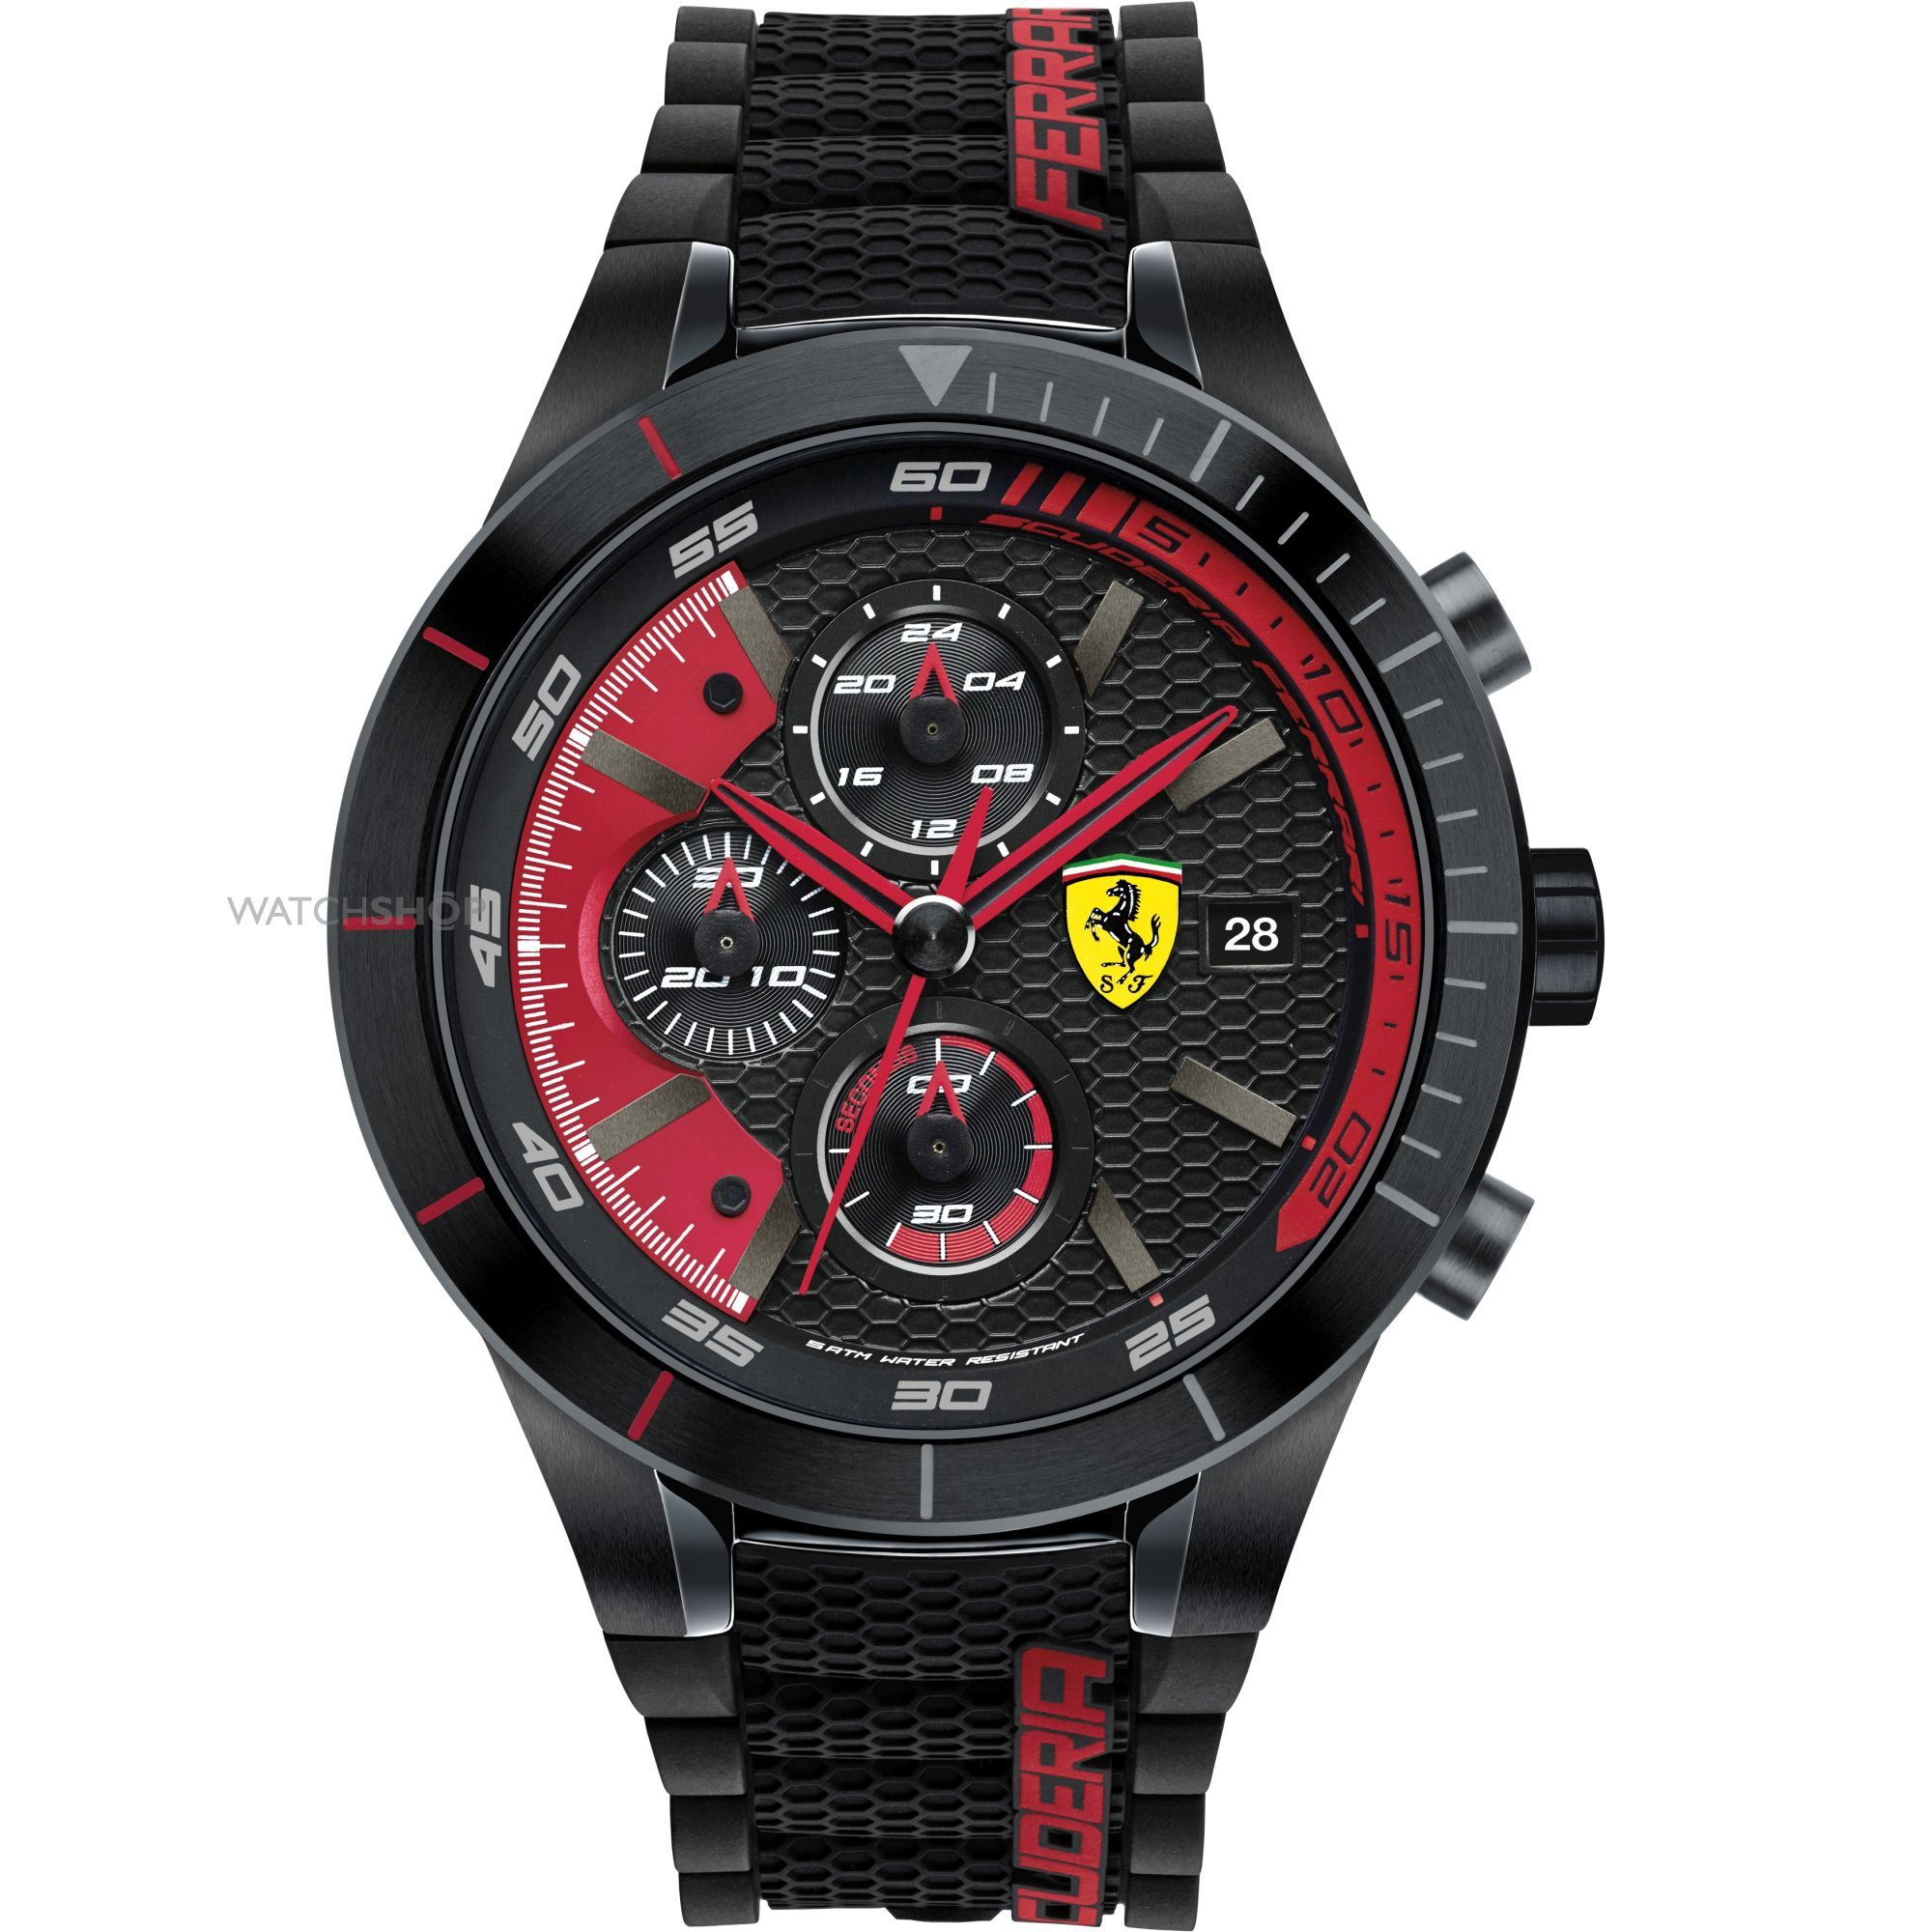 for men crop omega harrods editor top watches jewellery mens limited edition false hublot jpg richard ferrari upscale scale mille watch laferrari subsampling la the article mp